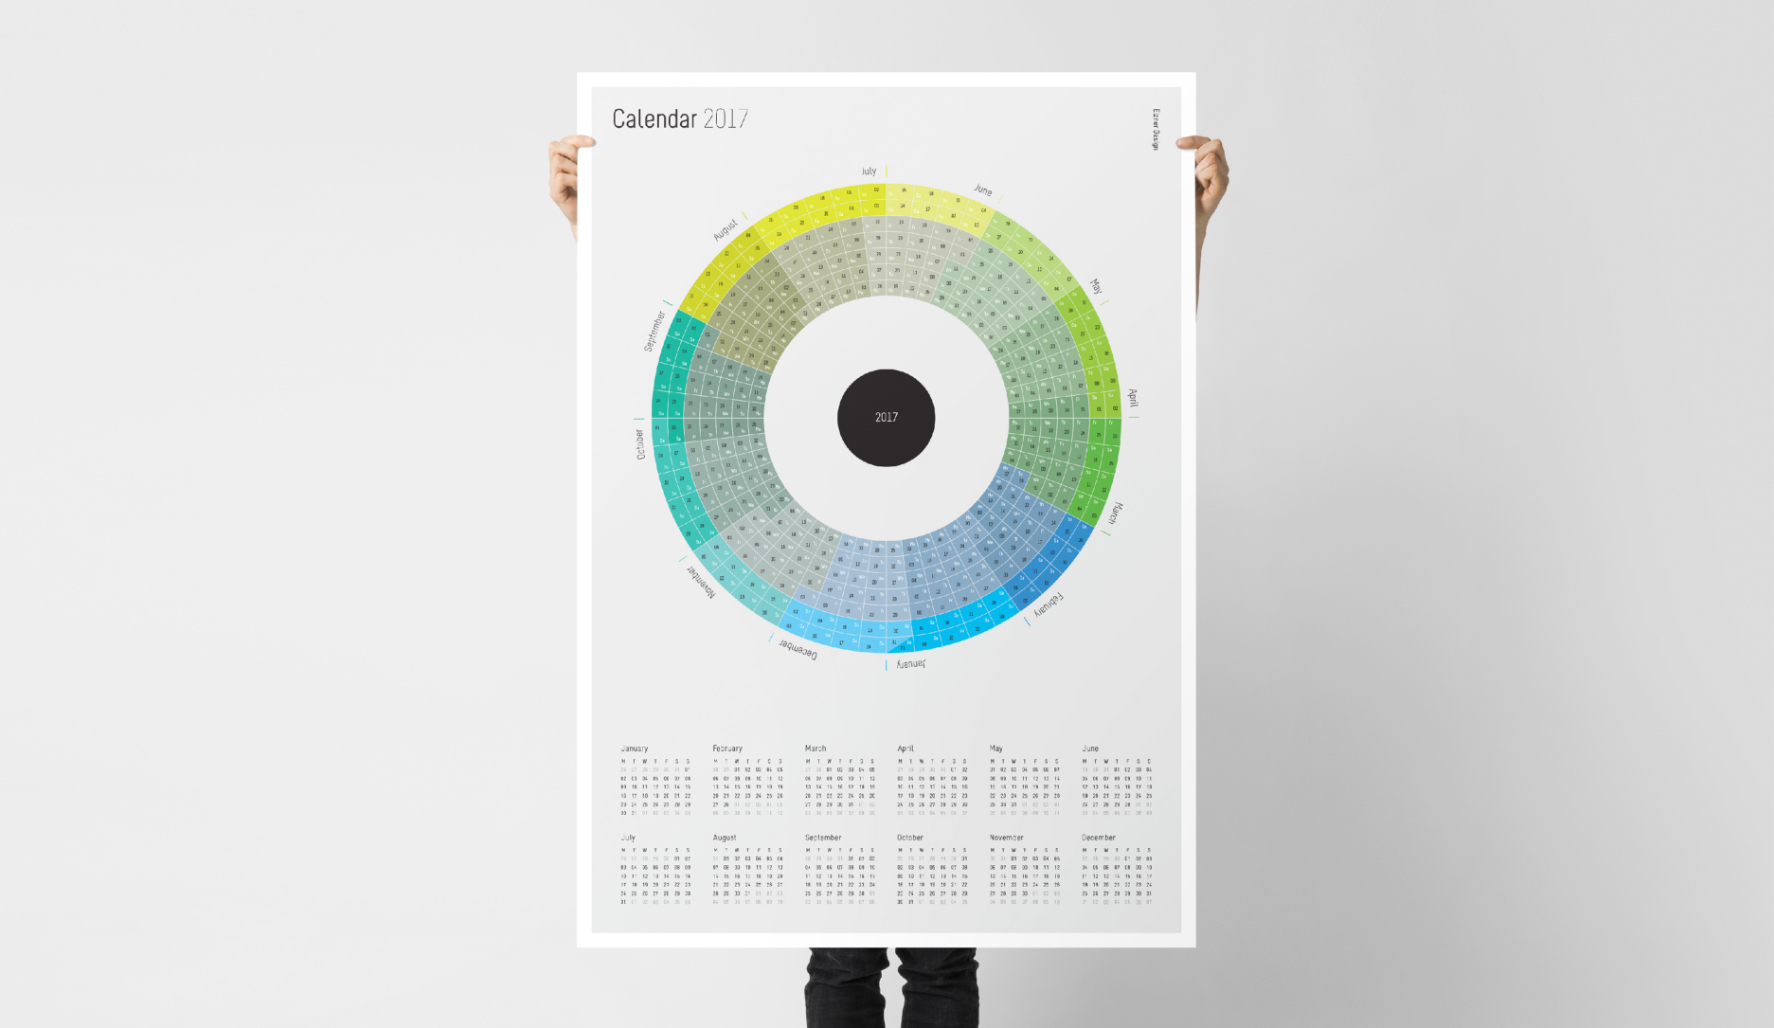 Calendar design data visualisation